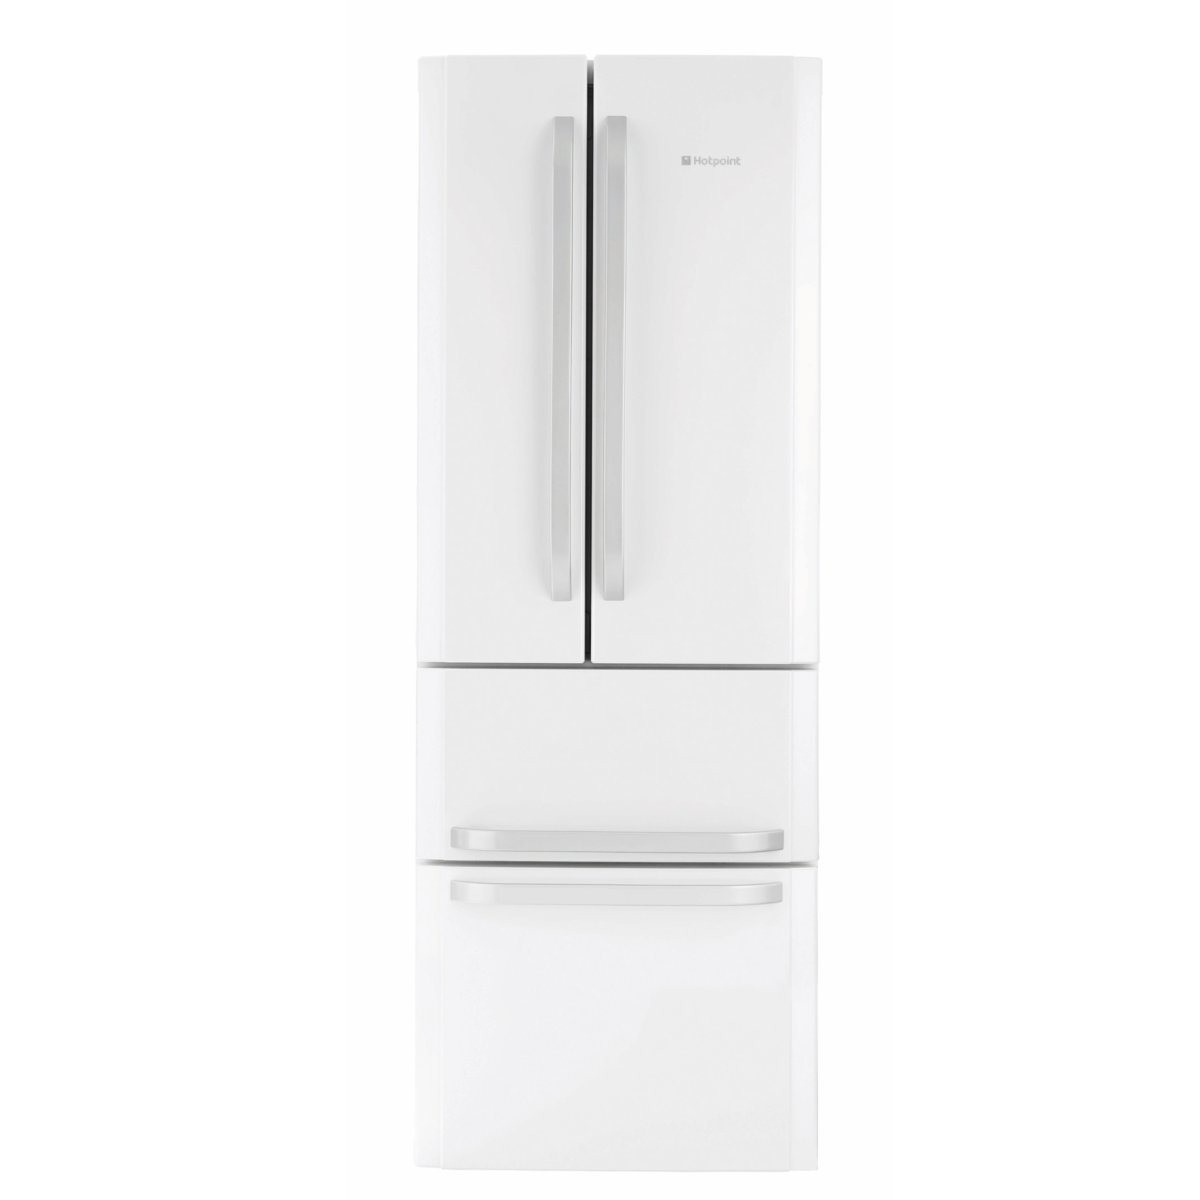 refrigerator hotpoint ariston e4daawc f077956. Black Bedroom Furniture Sets. Home Design Ideas